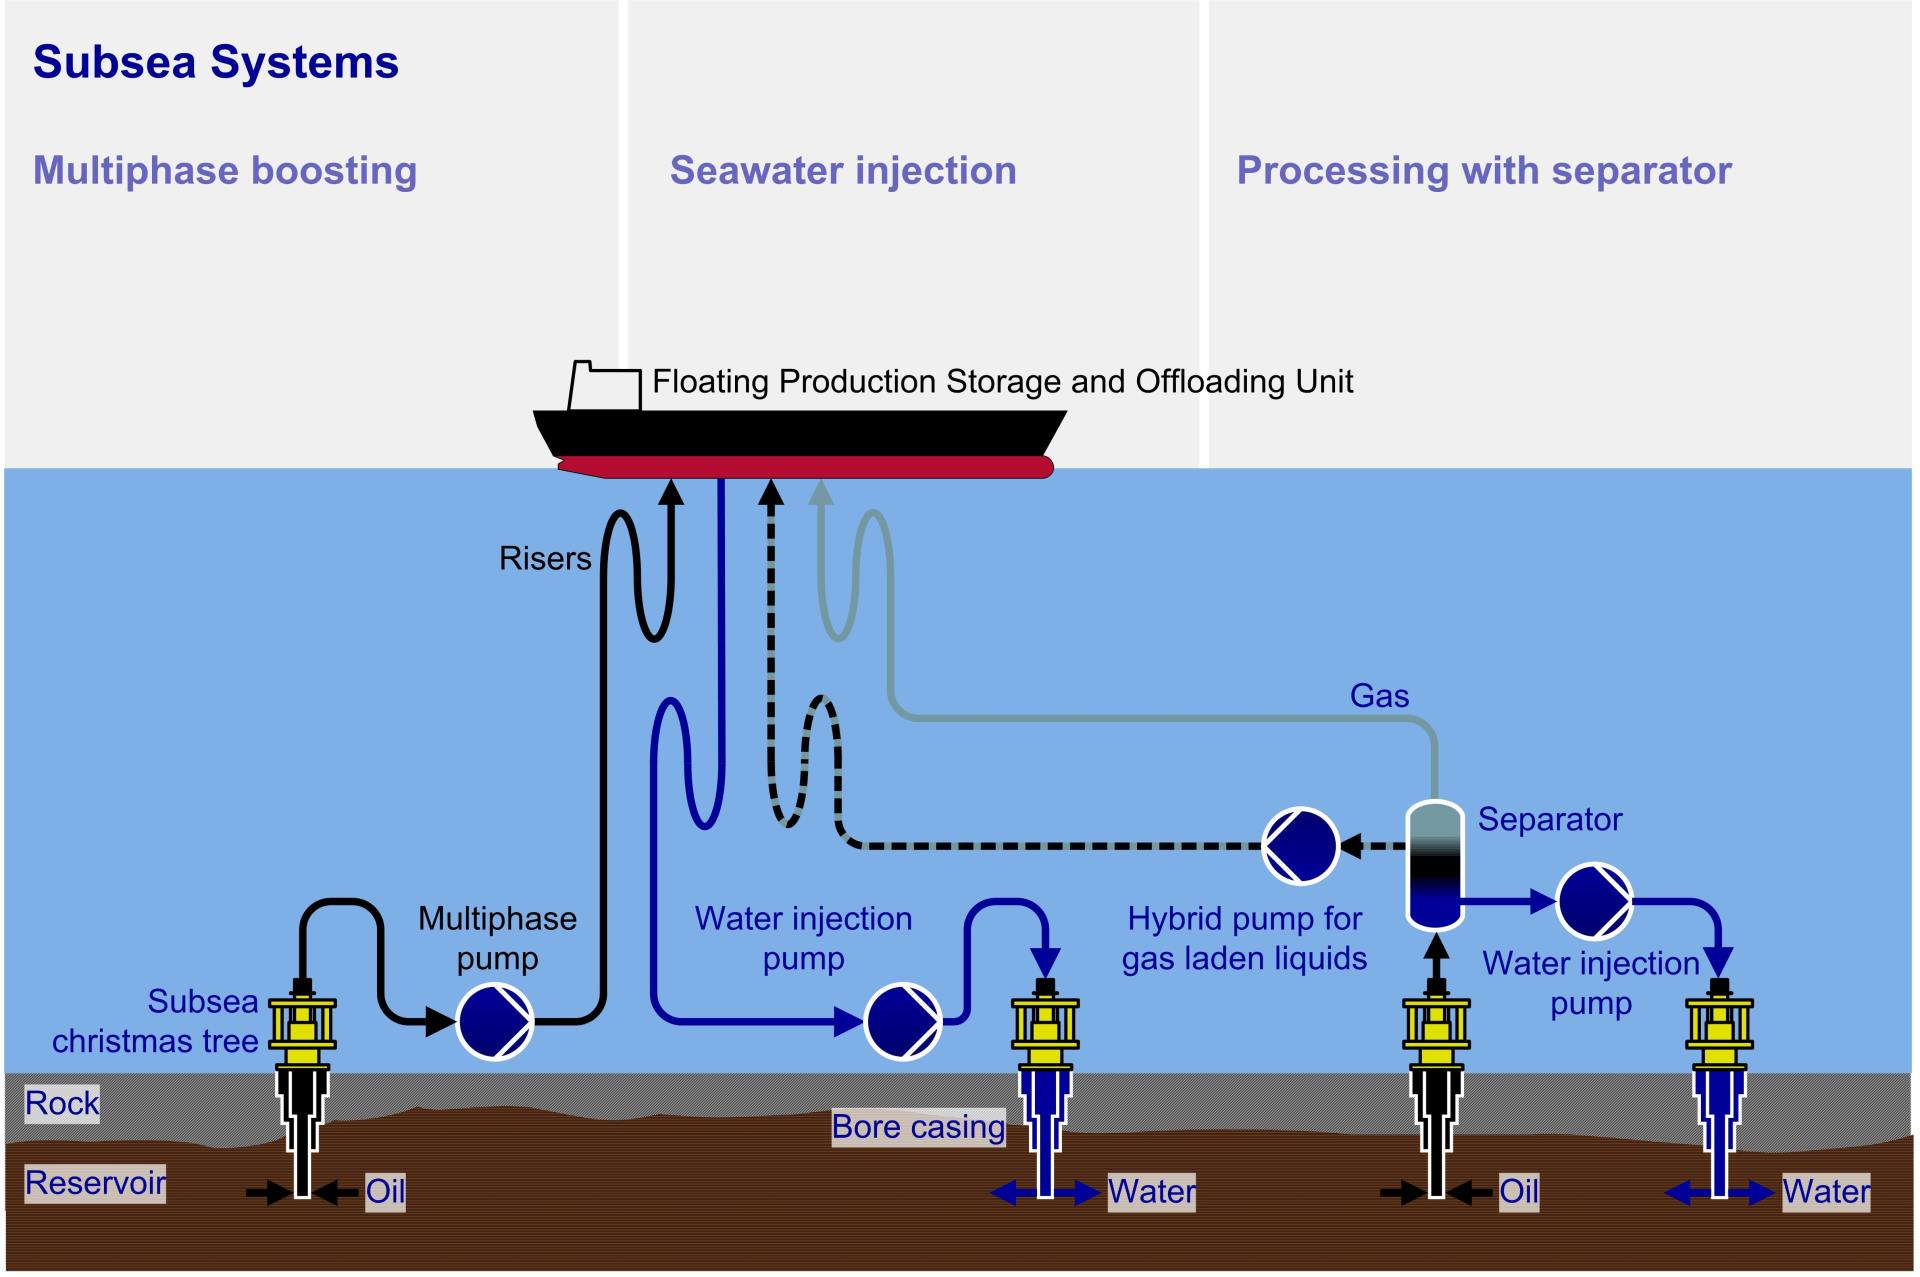 Subsea Systems